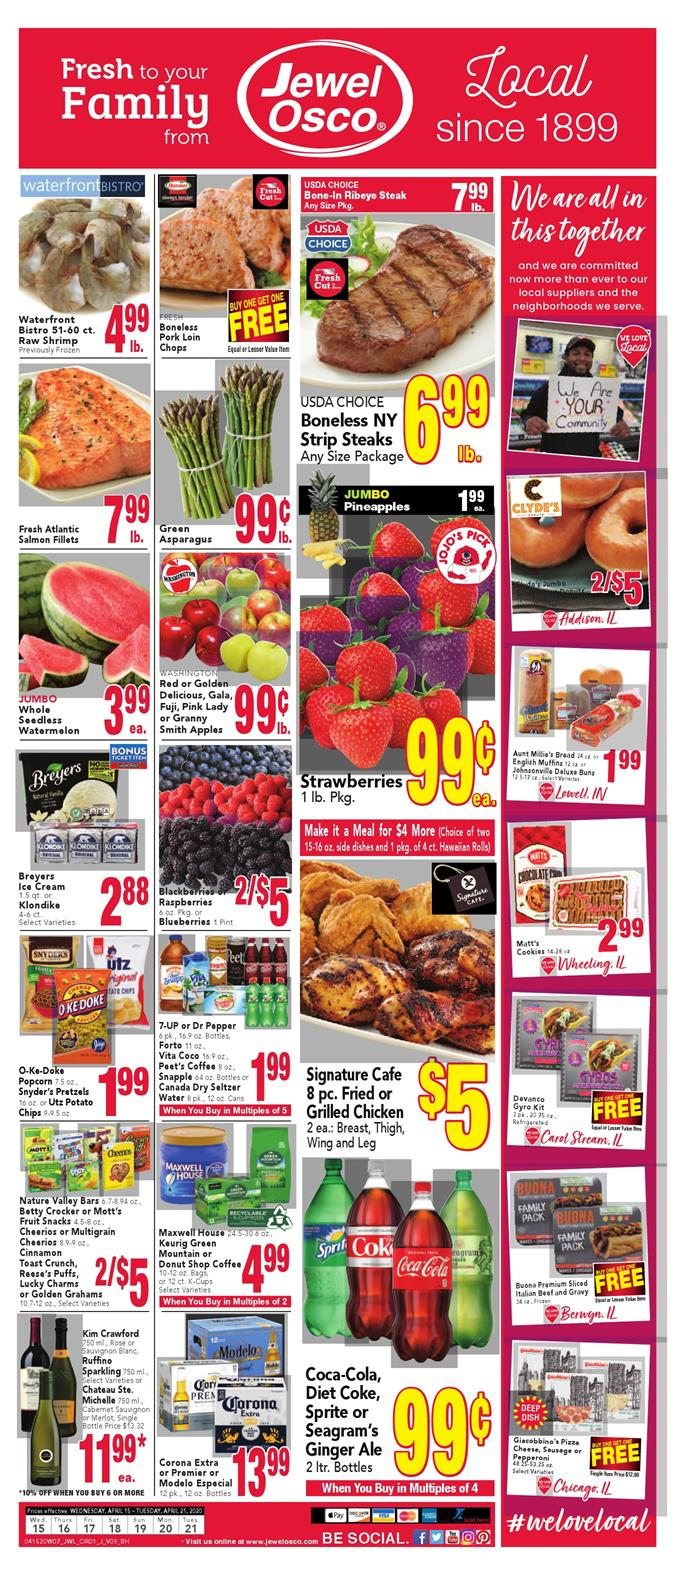 jewel osco ad apr 15 2020